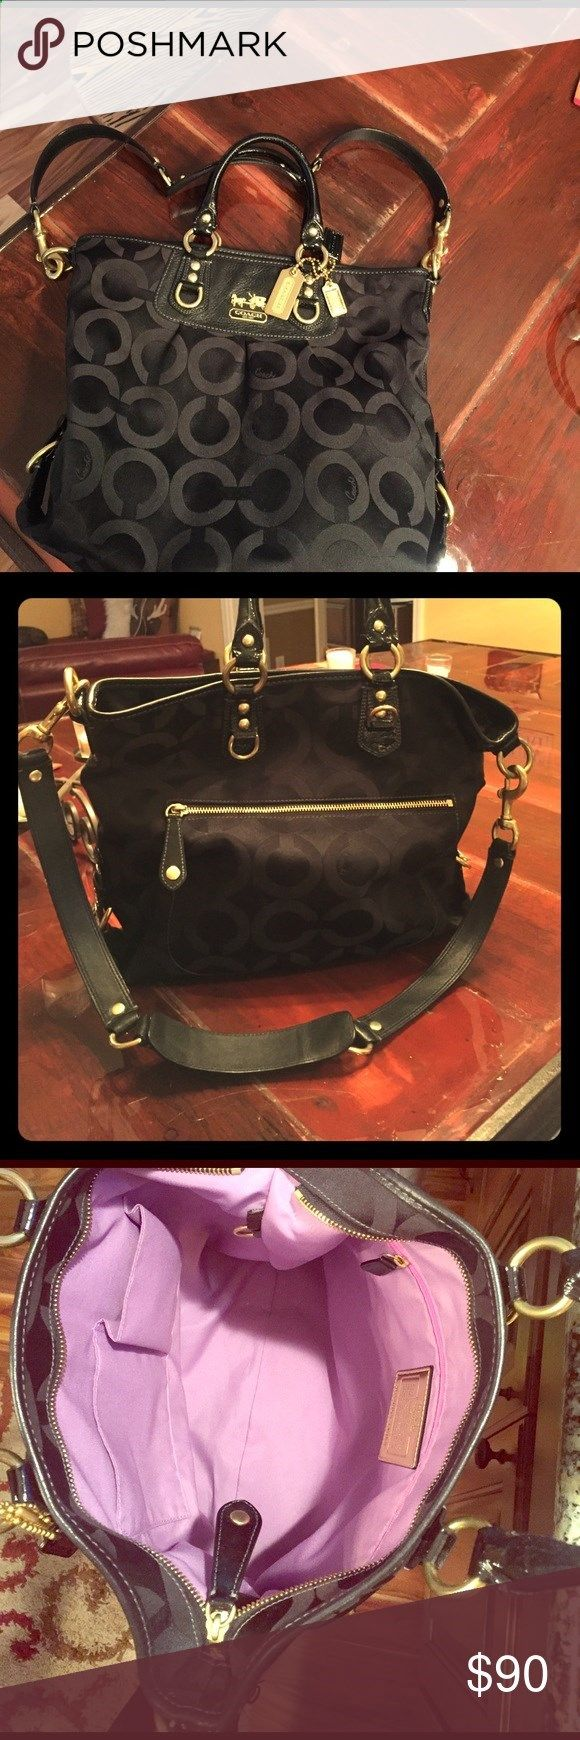 Coach purse Impeccable Black Coach purse. Coach Bags Shoulder Bags